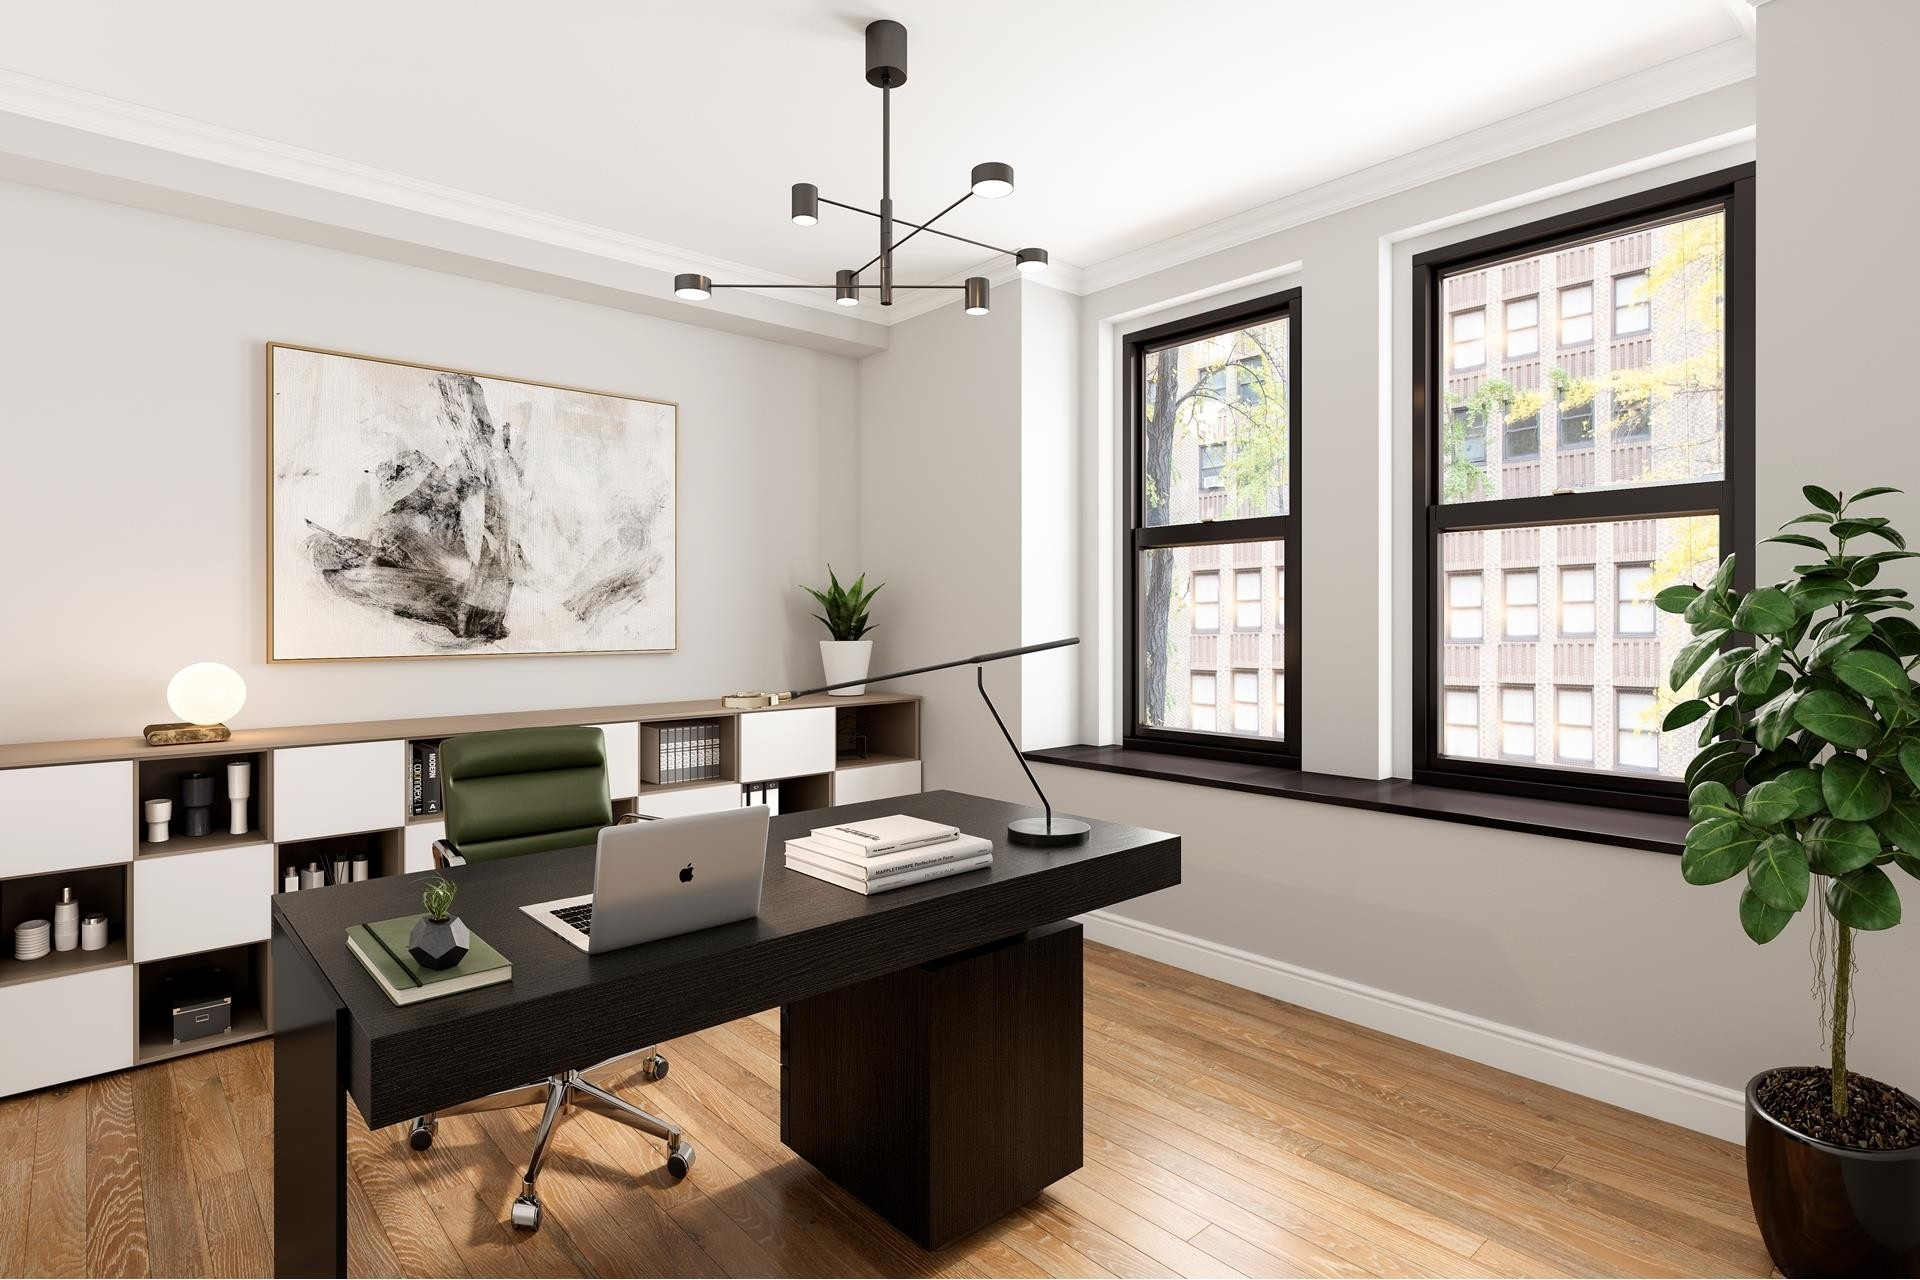 Co-op Properties for Sale at 325 East 57th St, 1B Midtown East, New York, NY 10022